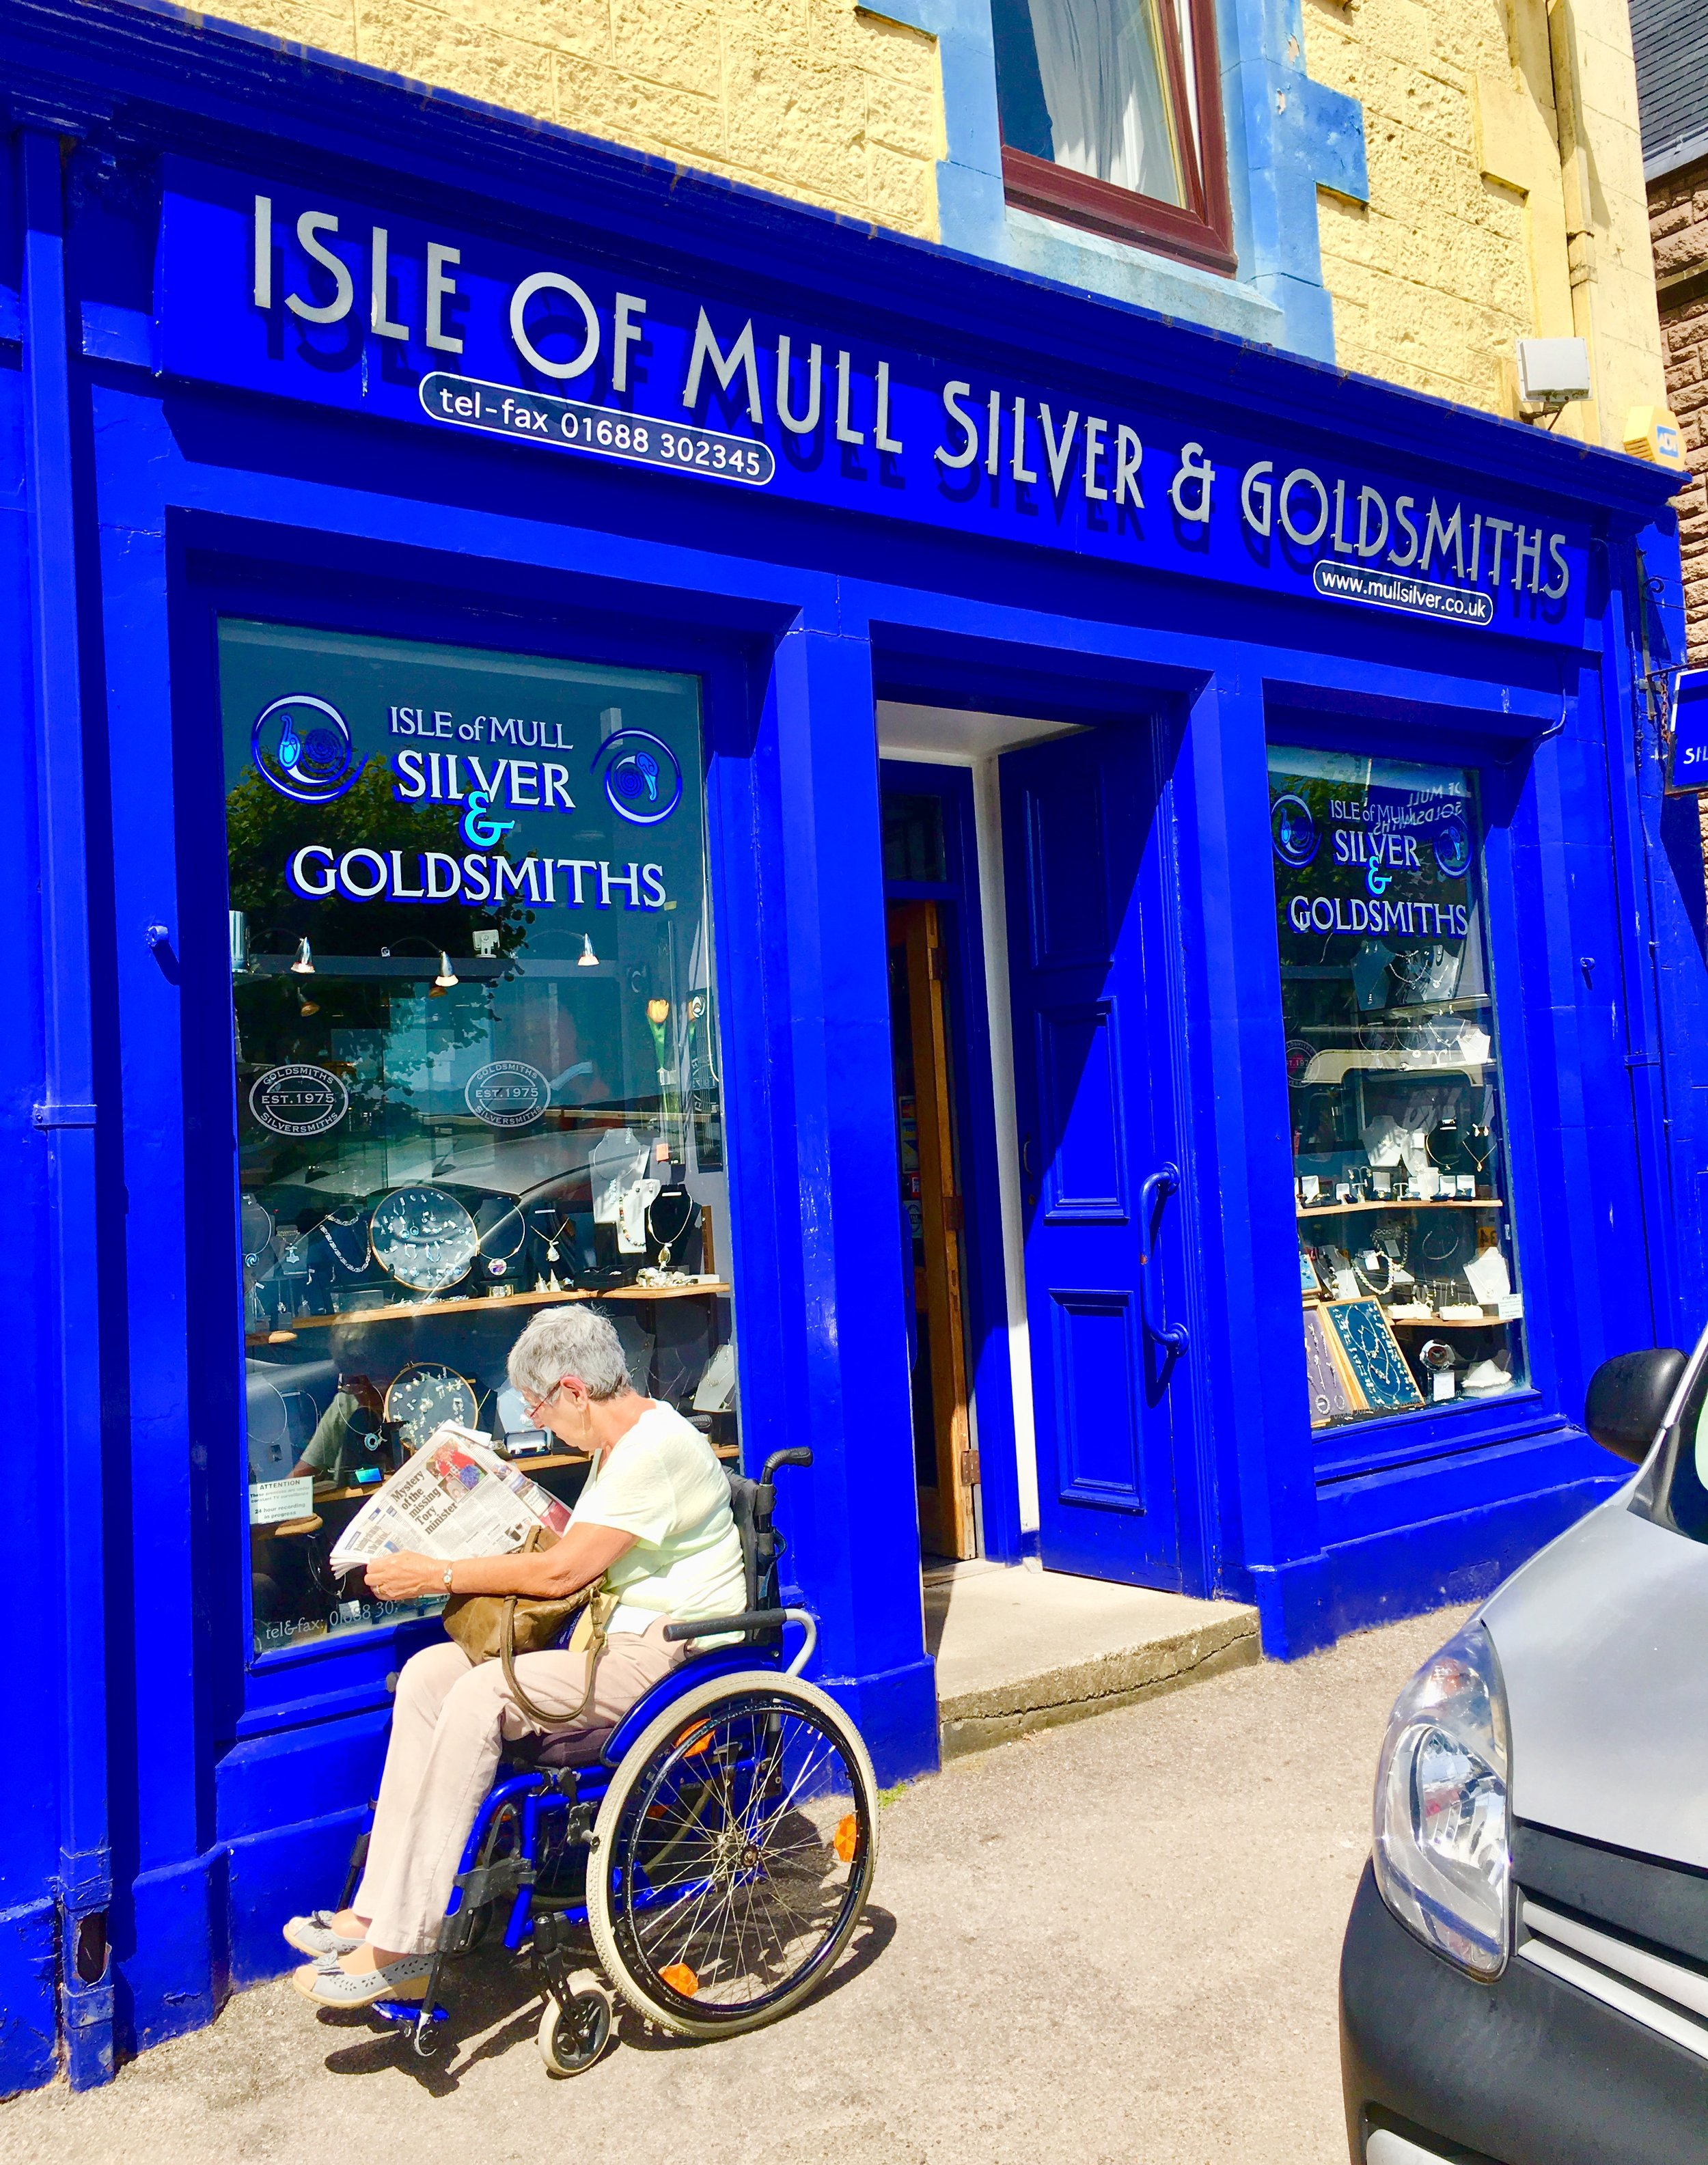 You can't miss Isle of Mull Silver & Goldsmith's cobalt blue storefront on Main Street.